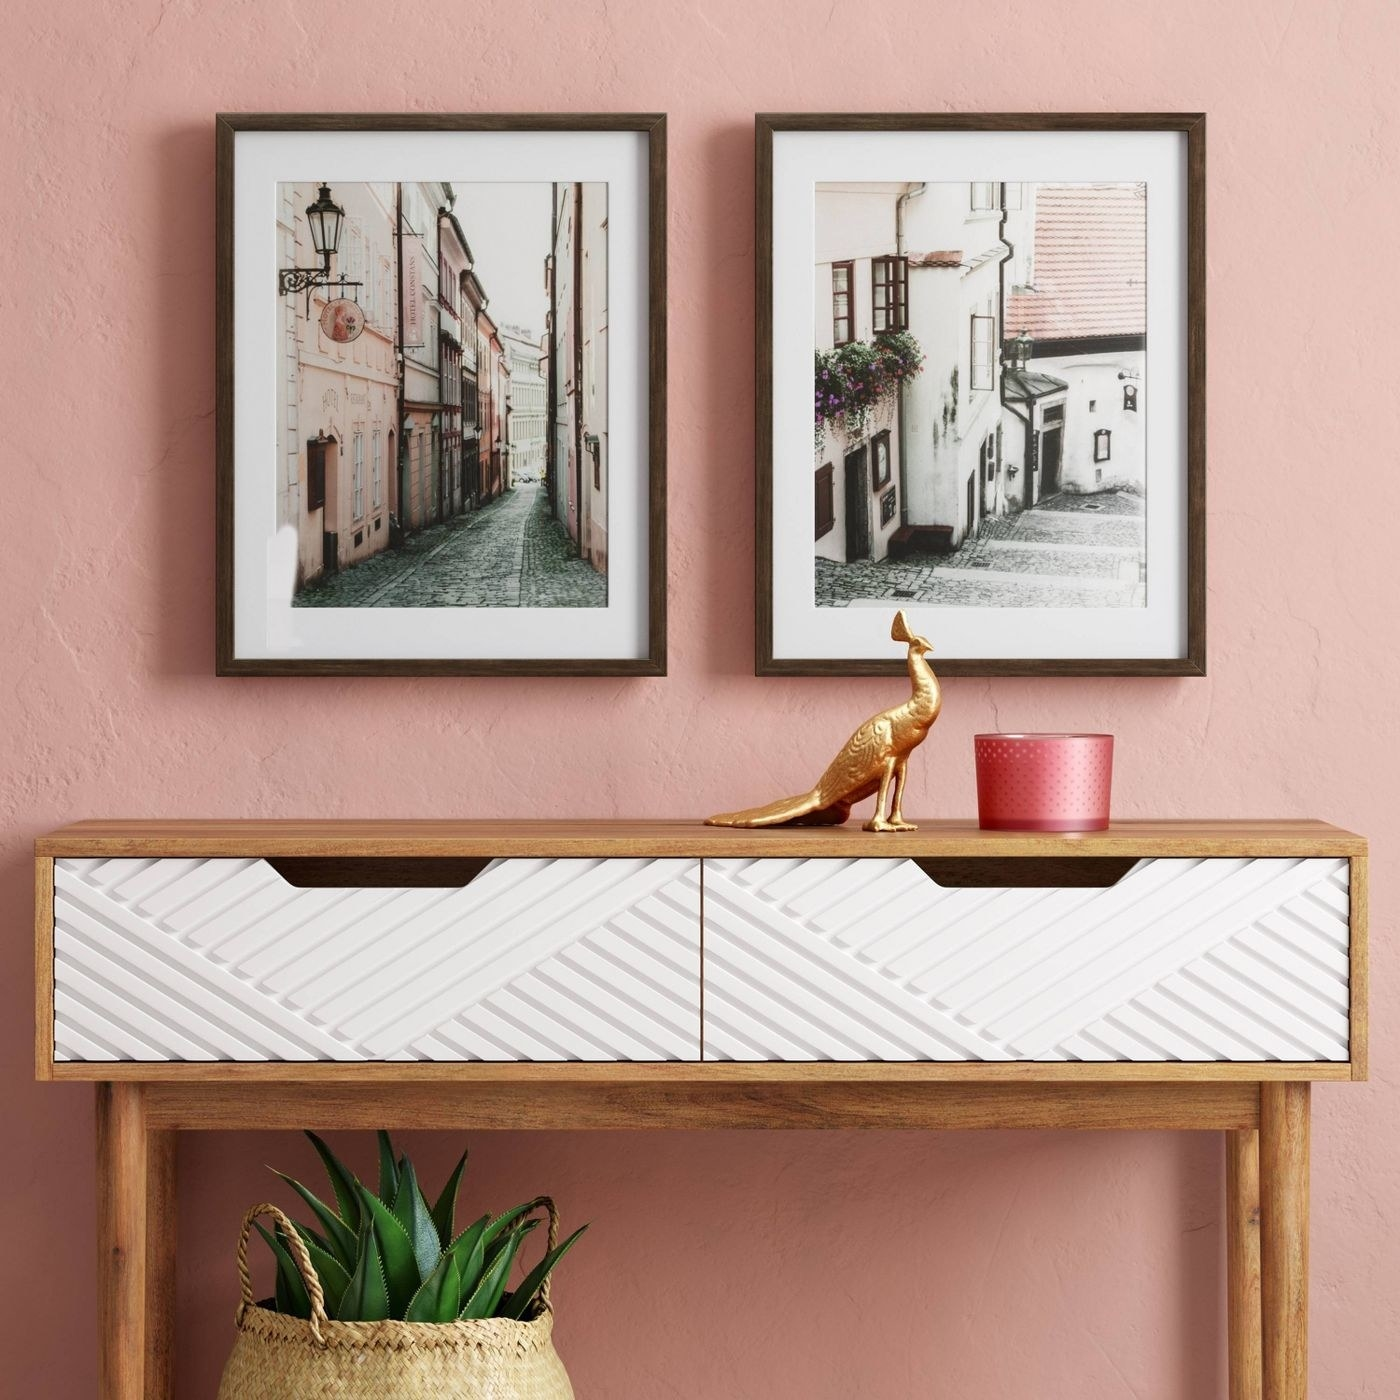 two framed photographs of city streets placed above a console table